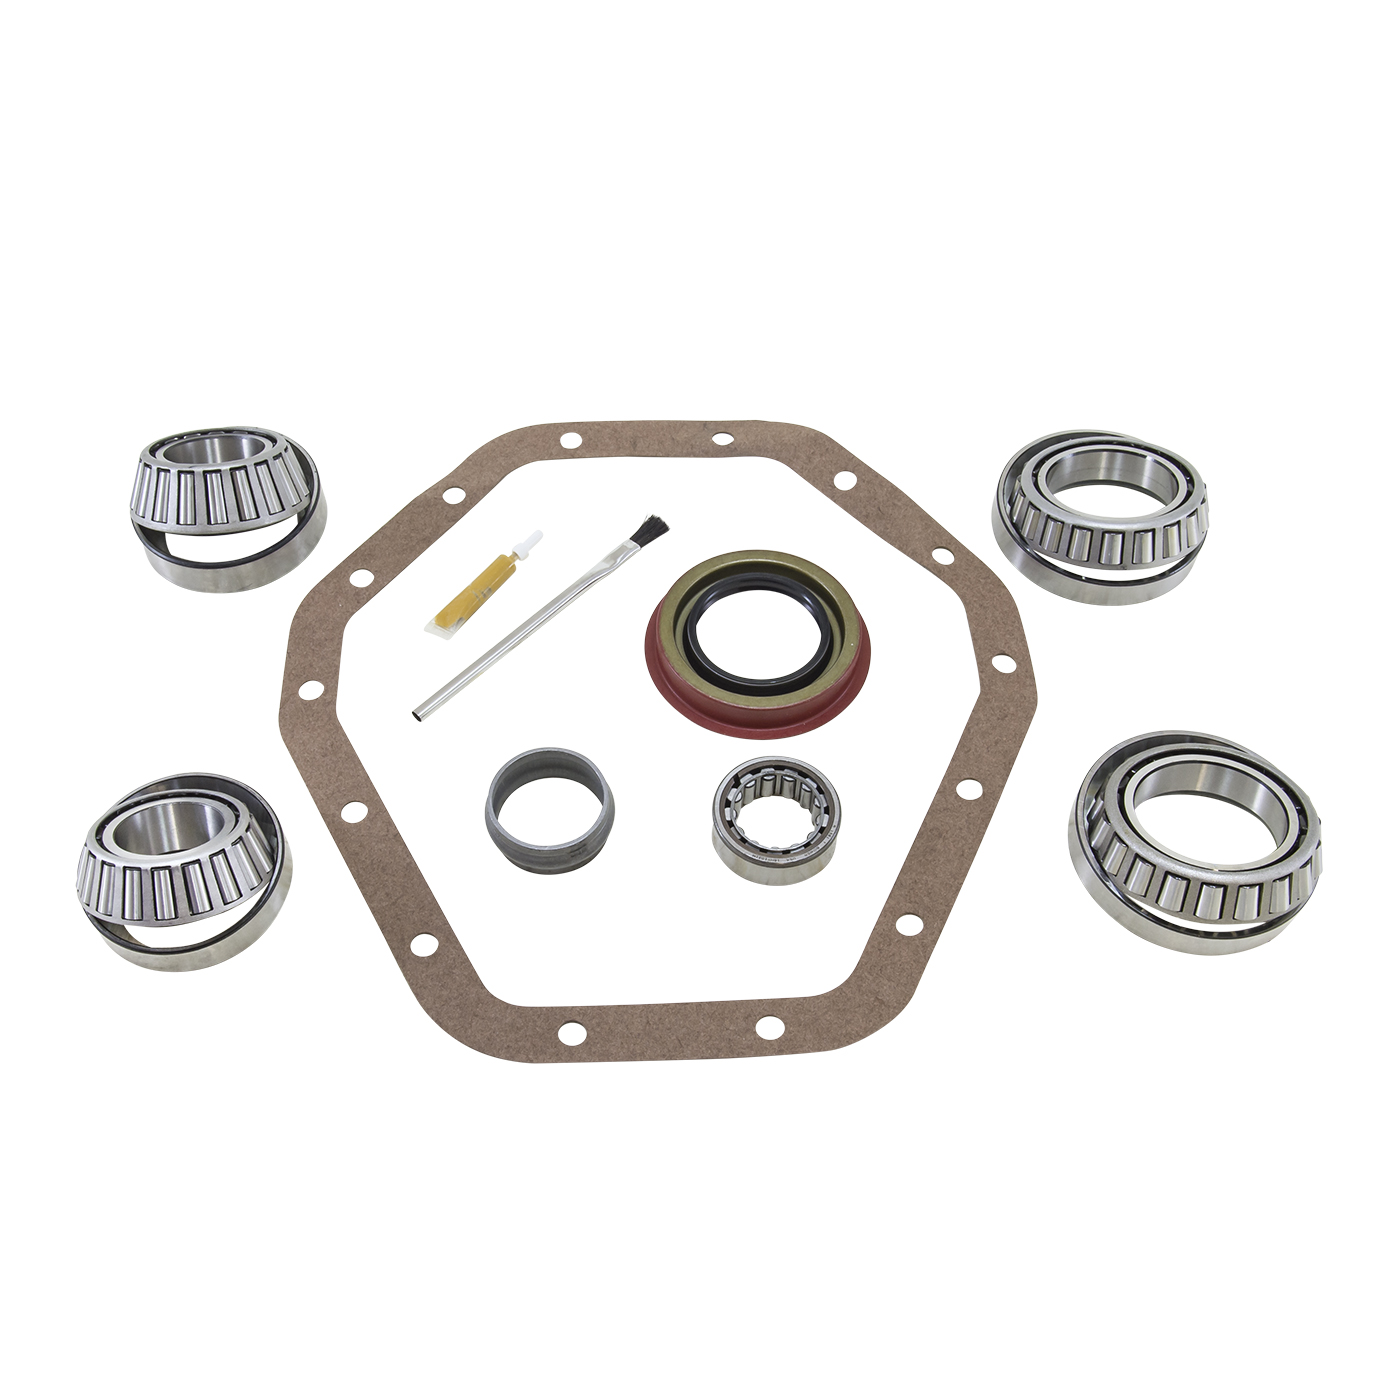 BK GM14T-A - Yukon Bearing install kit for '88 and older 10.5